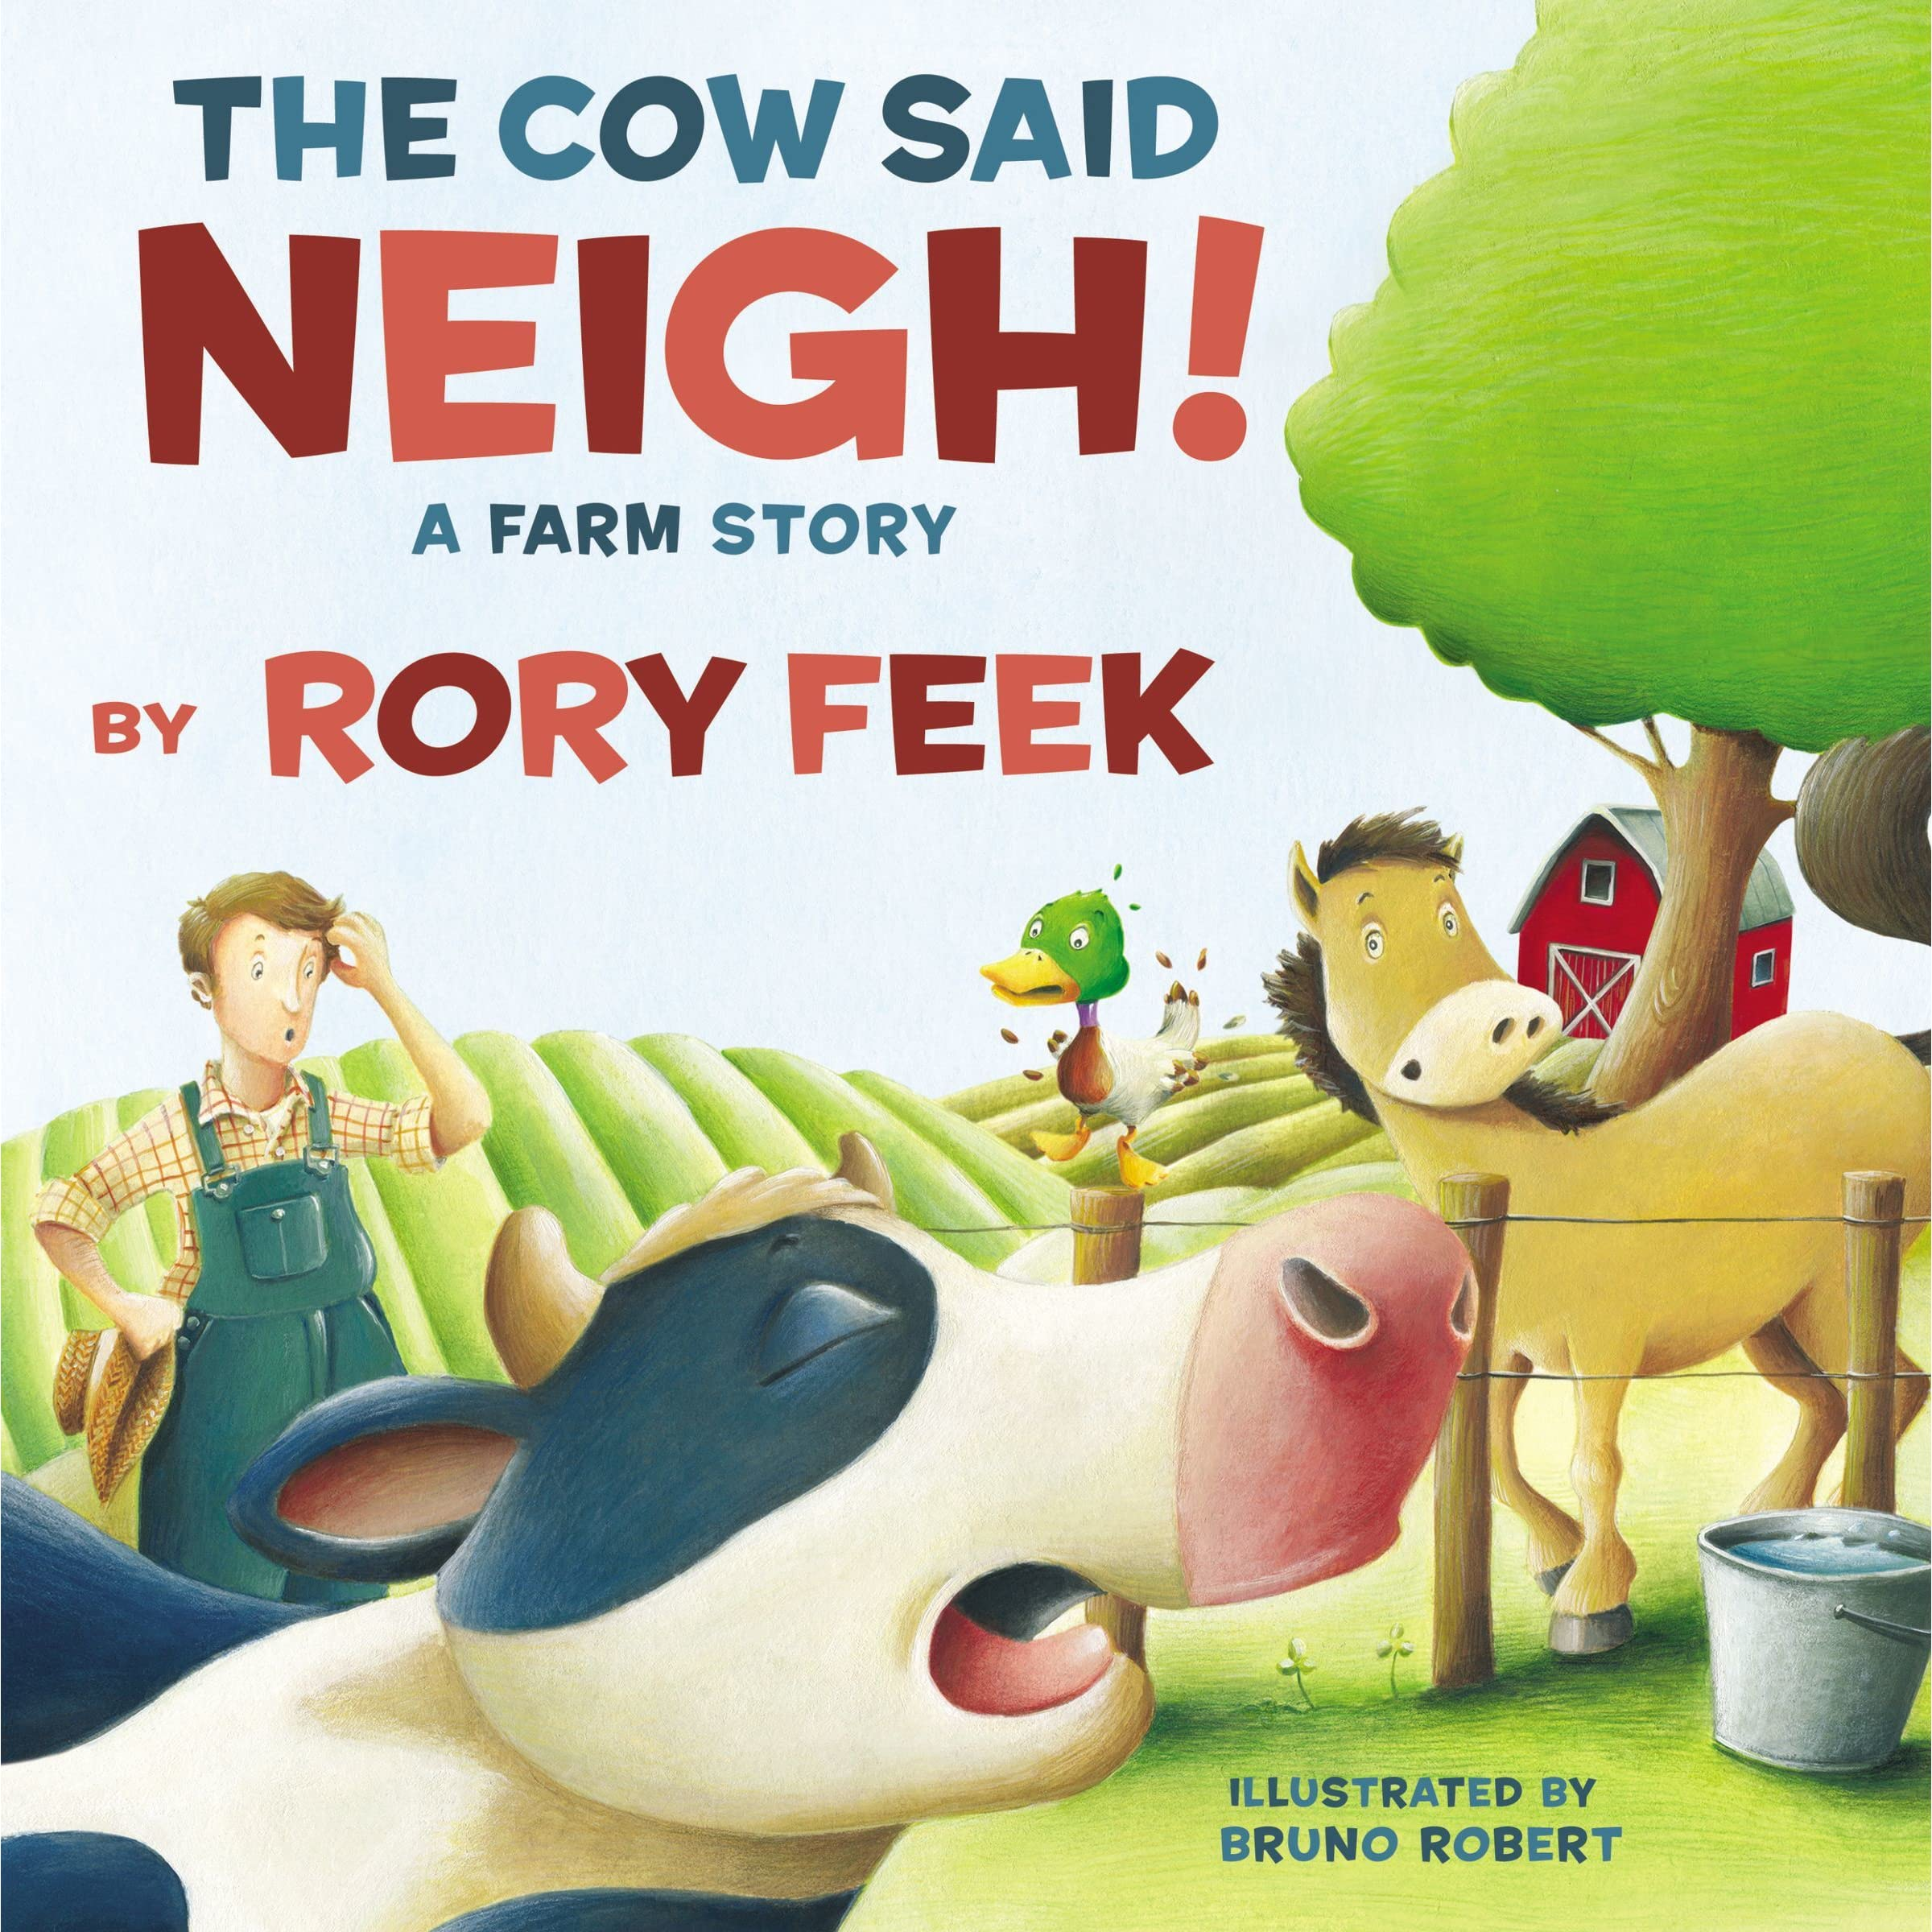 The Cow Said Neigh!: A Farm Story by Rory Feek